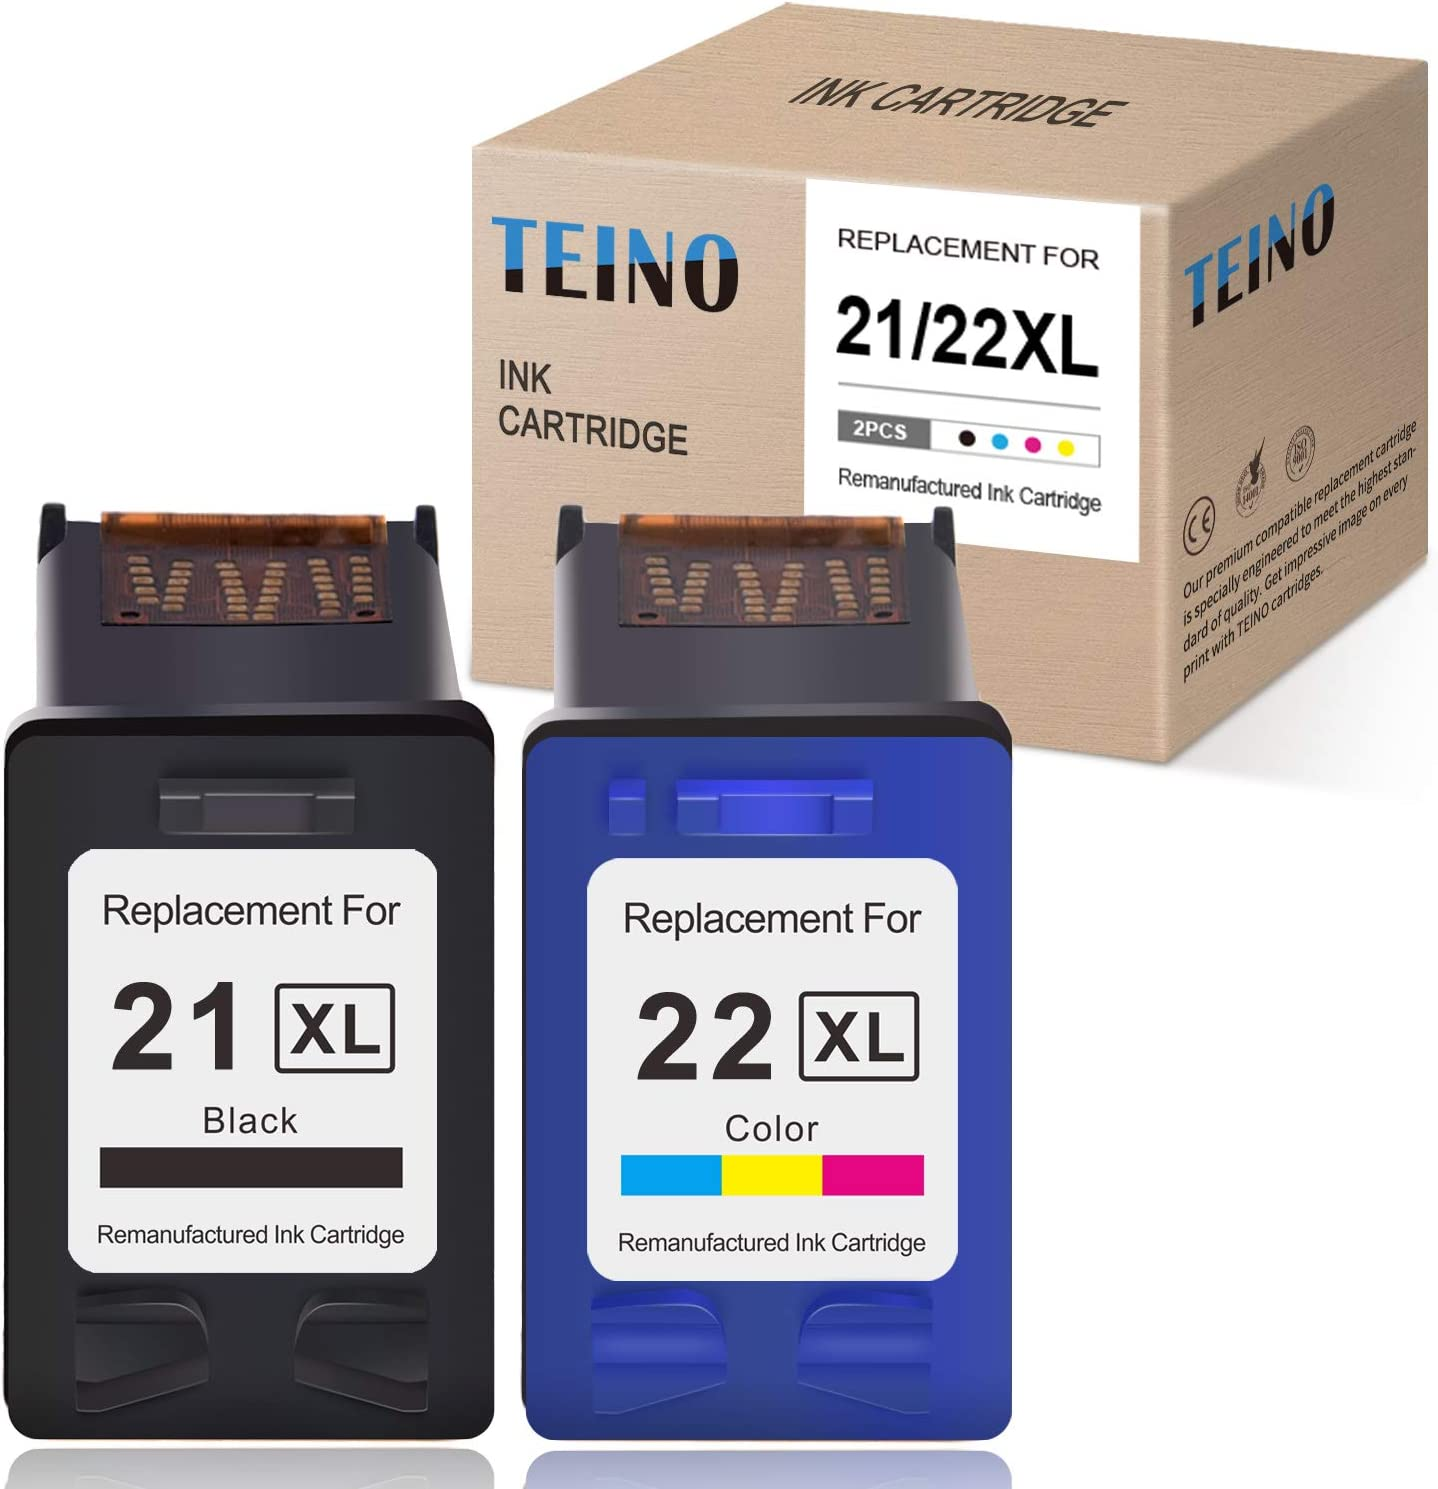 TEINO Remanufactured Ink Cartridge Replacement for HP 21XL 22XL 21 22 C9351AN C9352AN use with HP DeskJet F380 3910 D1520 F2210 3915 D1530 D1455 D1420 F2240 PSC 1410 (Black, Tri-Color, 2-Pack)